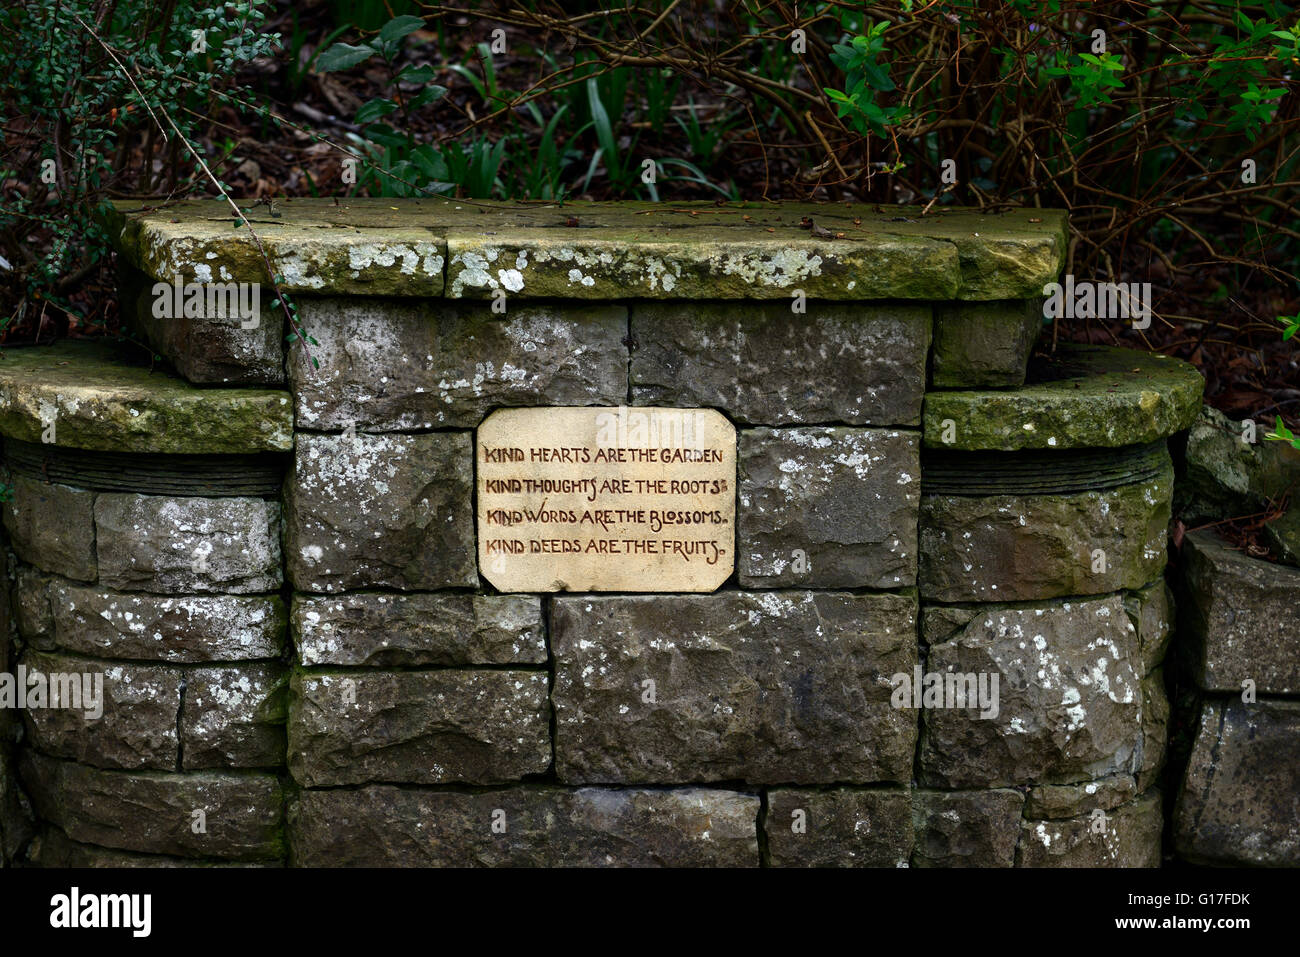 Wall Plaque garden gardening poem phrase cute kitsch saying motto prose Henry Wadsworth Longfellow RM Floral - Stock Image